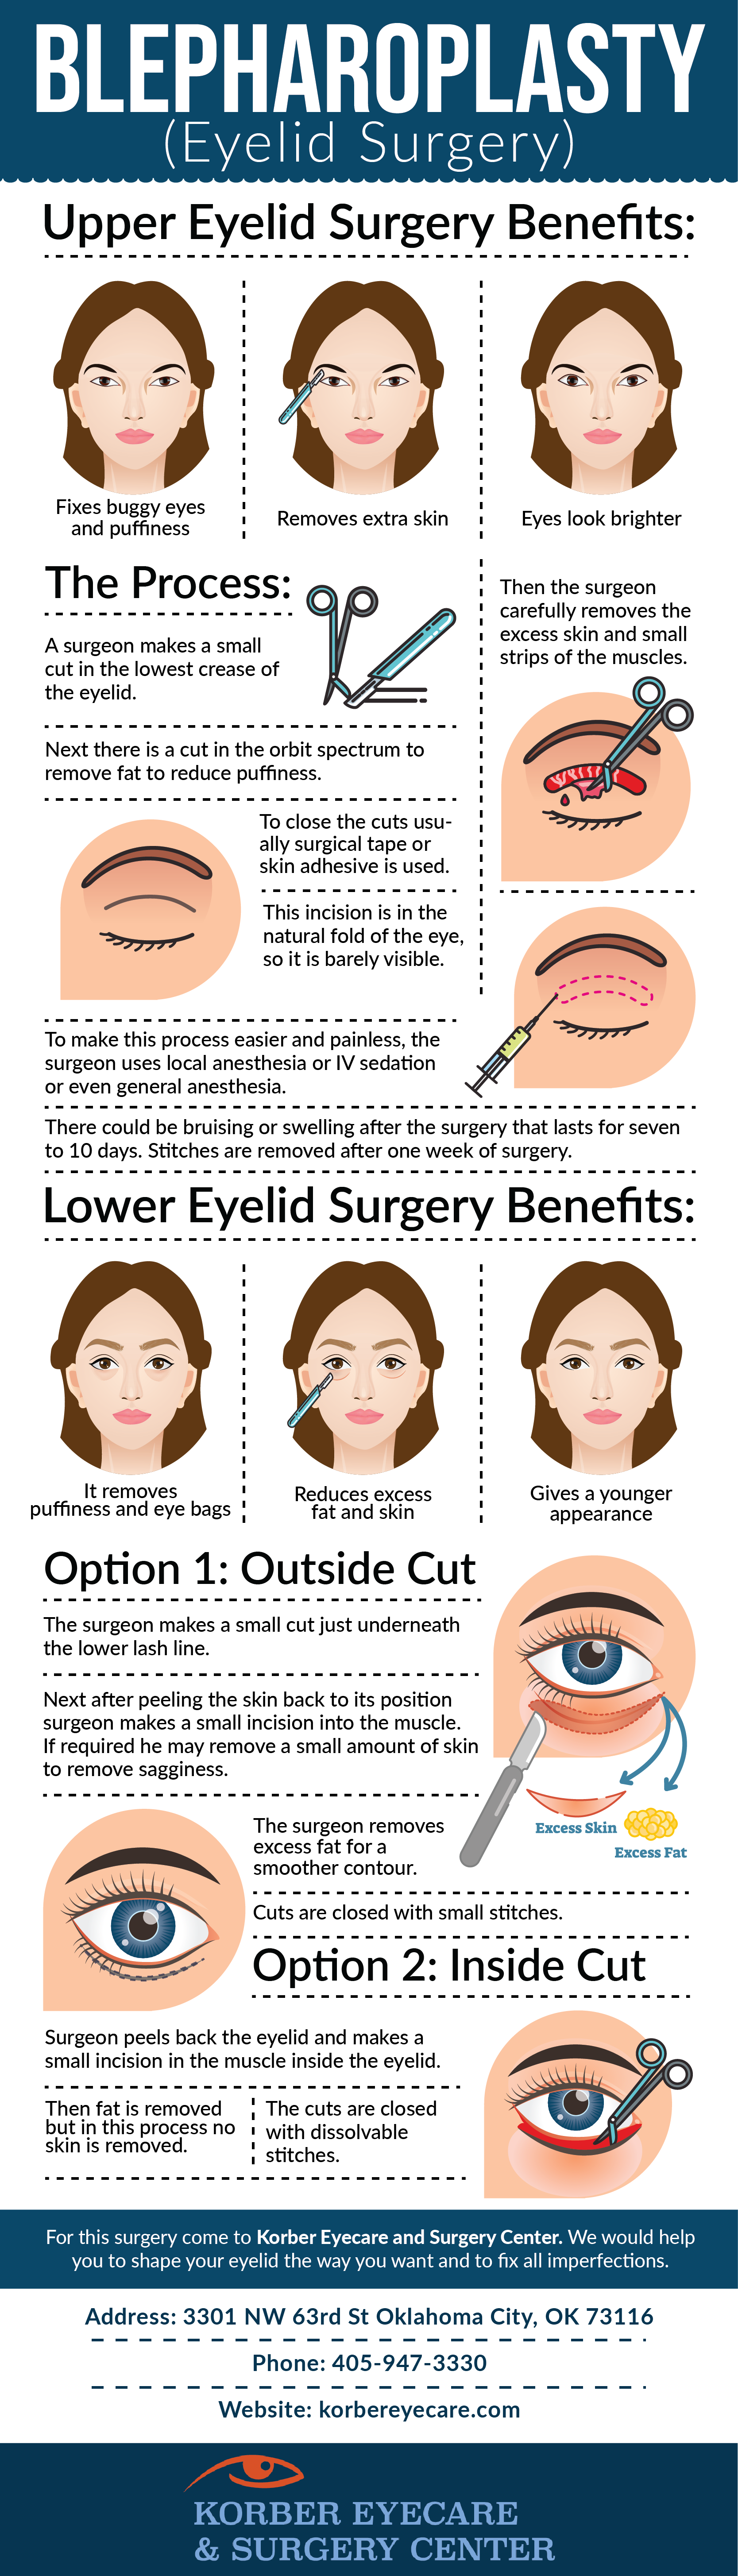 eyelid surgery okc-Infographic.png